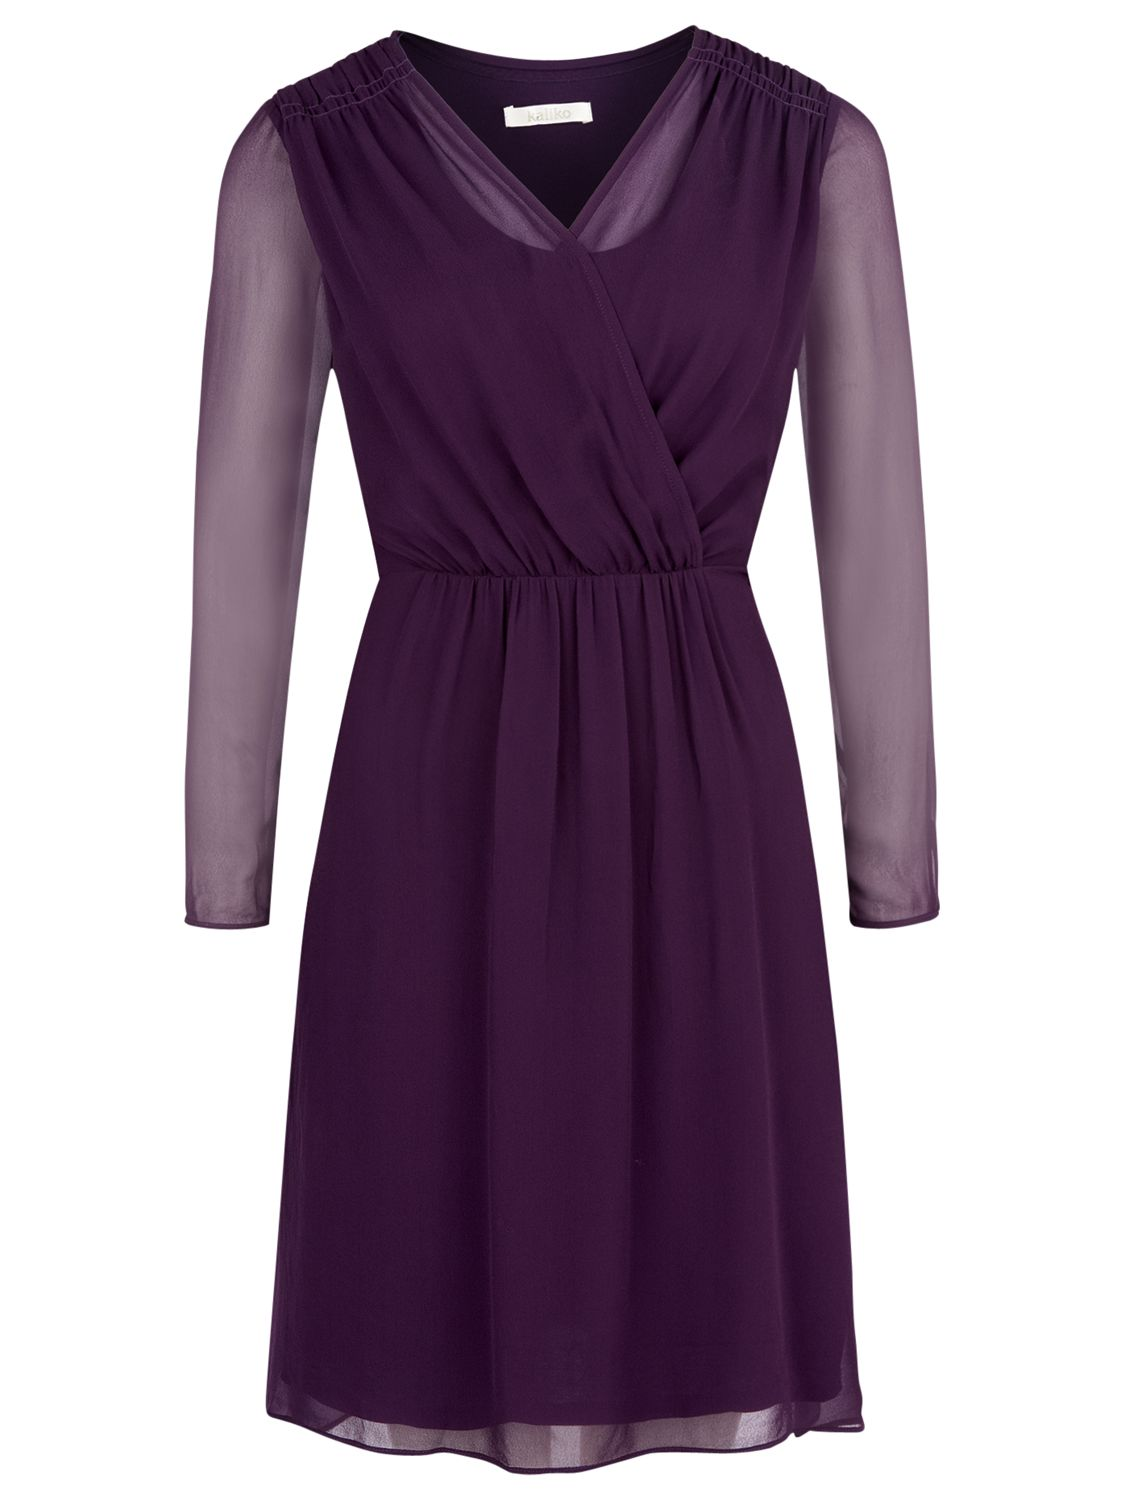 kaliko wrap front tunic dress dark purple, kaliko, wrap, front, tunic, dress, dark, purple, 14|16|10|12, clearance, womenswear offers, womens dresses offers, special offers, 20% off selected kaliko, new years party offers, women, plus size, inactive womenswear, new reductions, womens dresses, 1693975